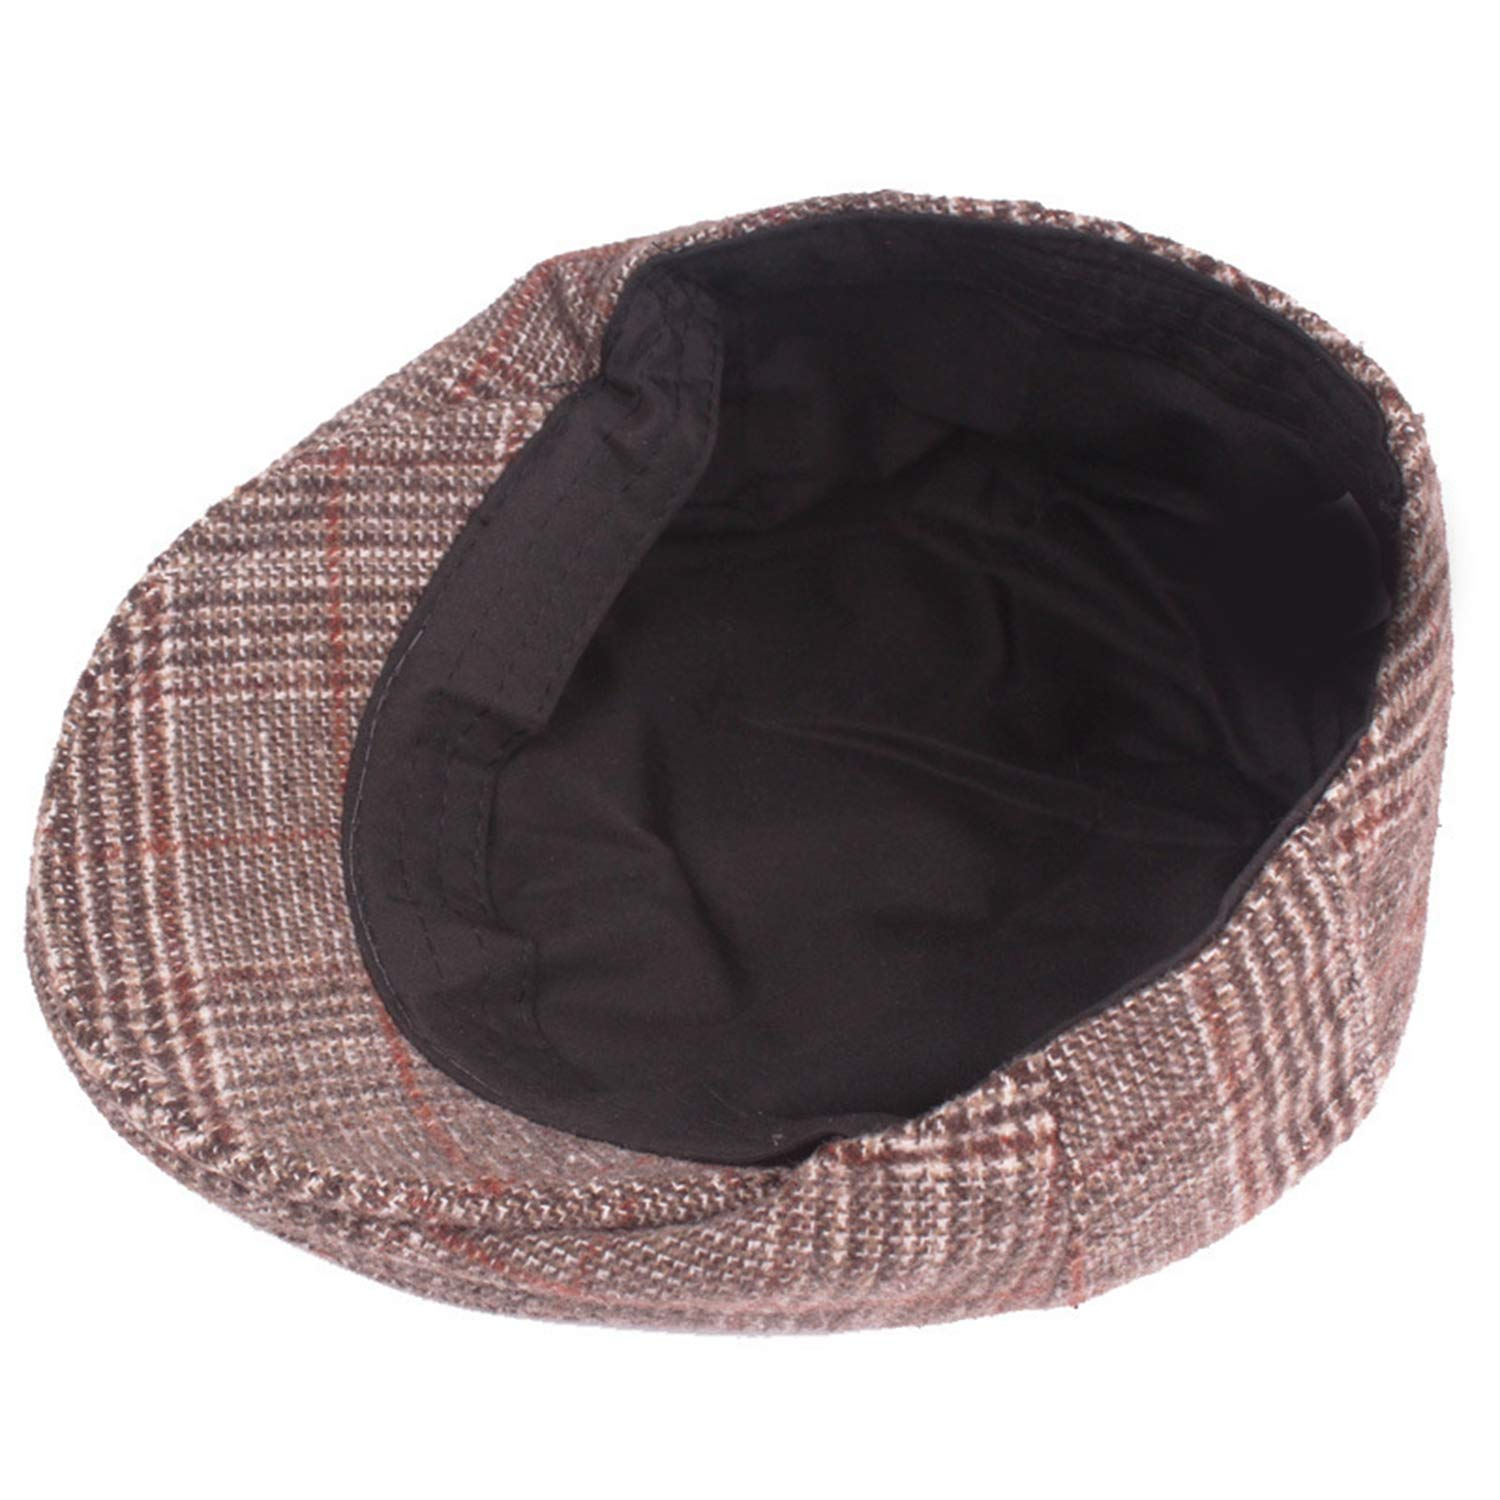 Winter Hat Mens Casual Fashion Cotton Berets Outdoor Checkered Tongue Cap Male Bone Dads Hat Trucker Caps for Men